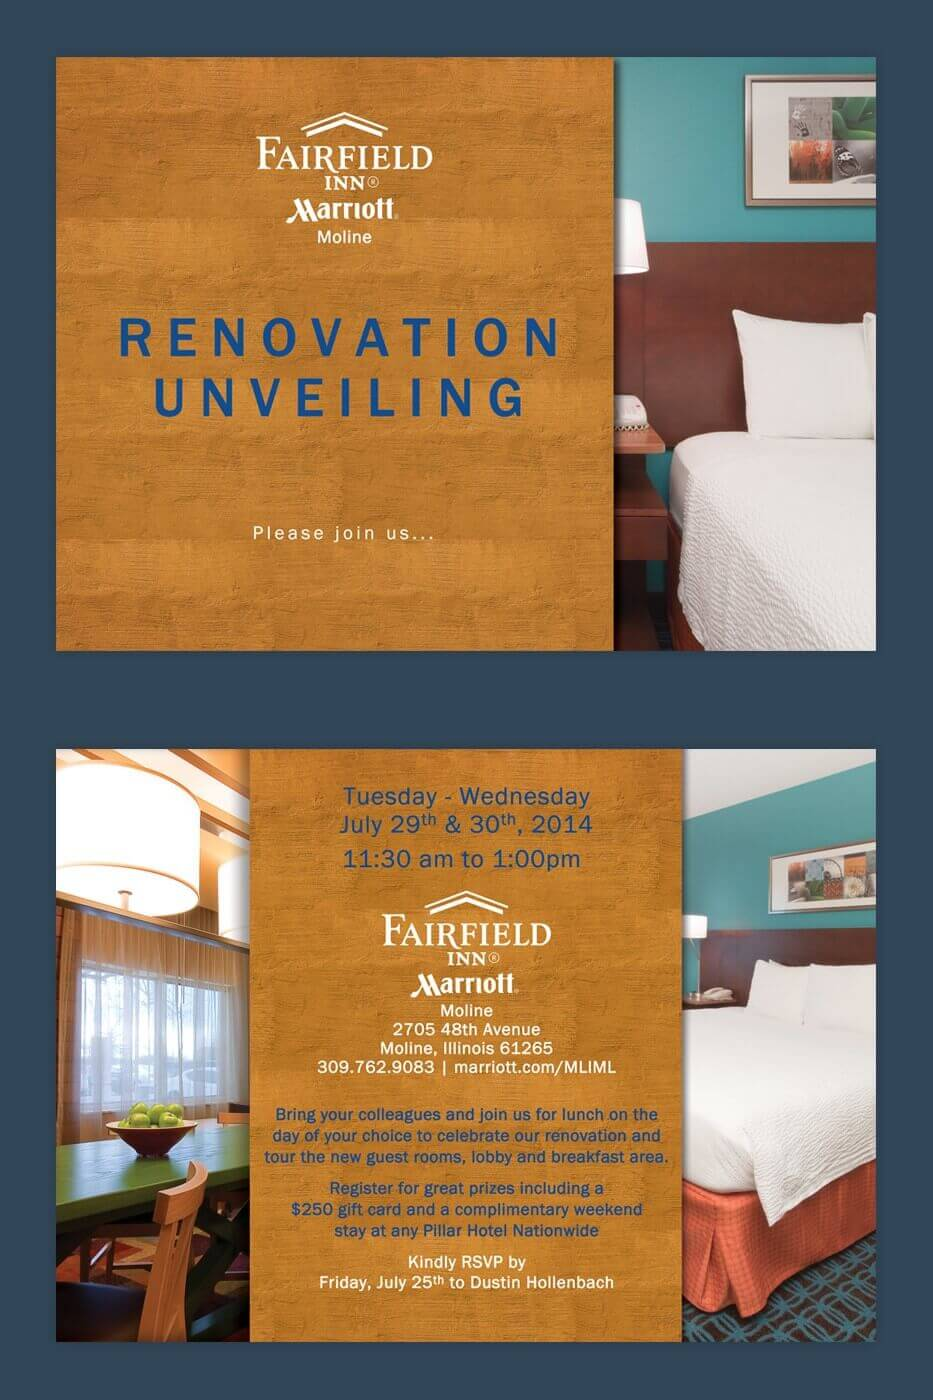 Marketing Collateral - Fairfield Inn Moline Invite